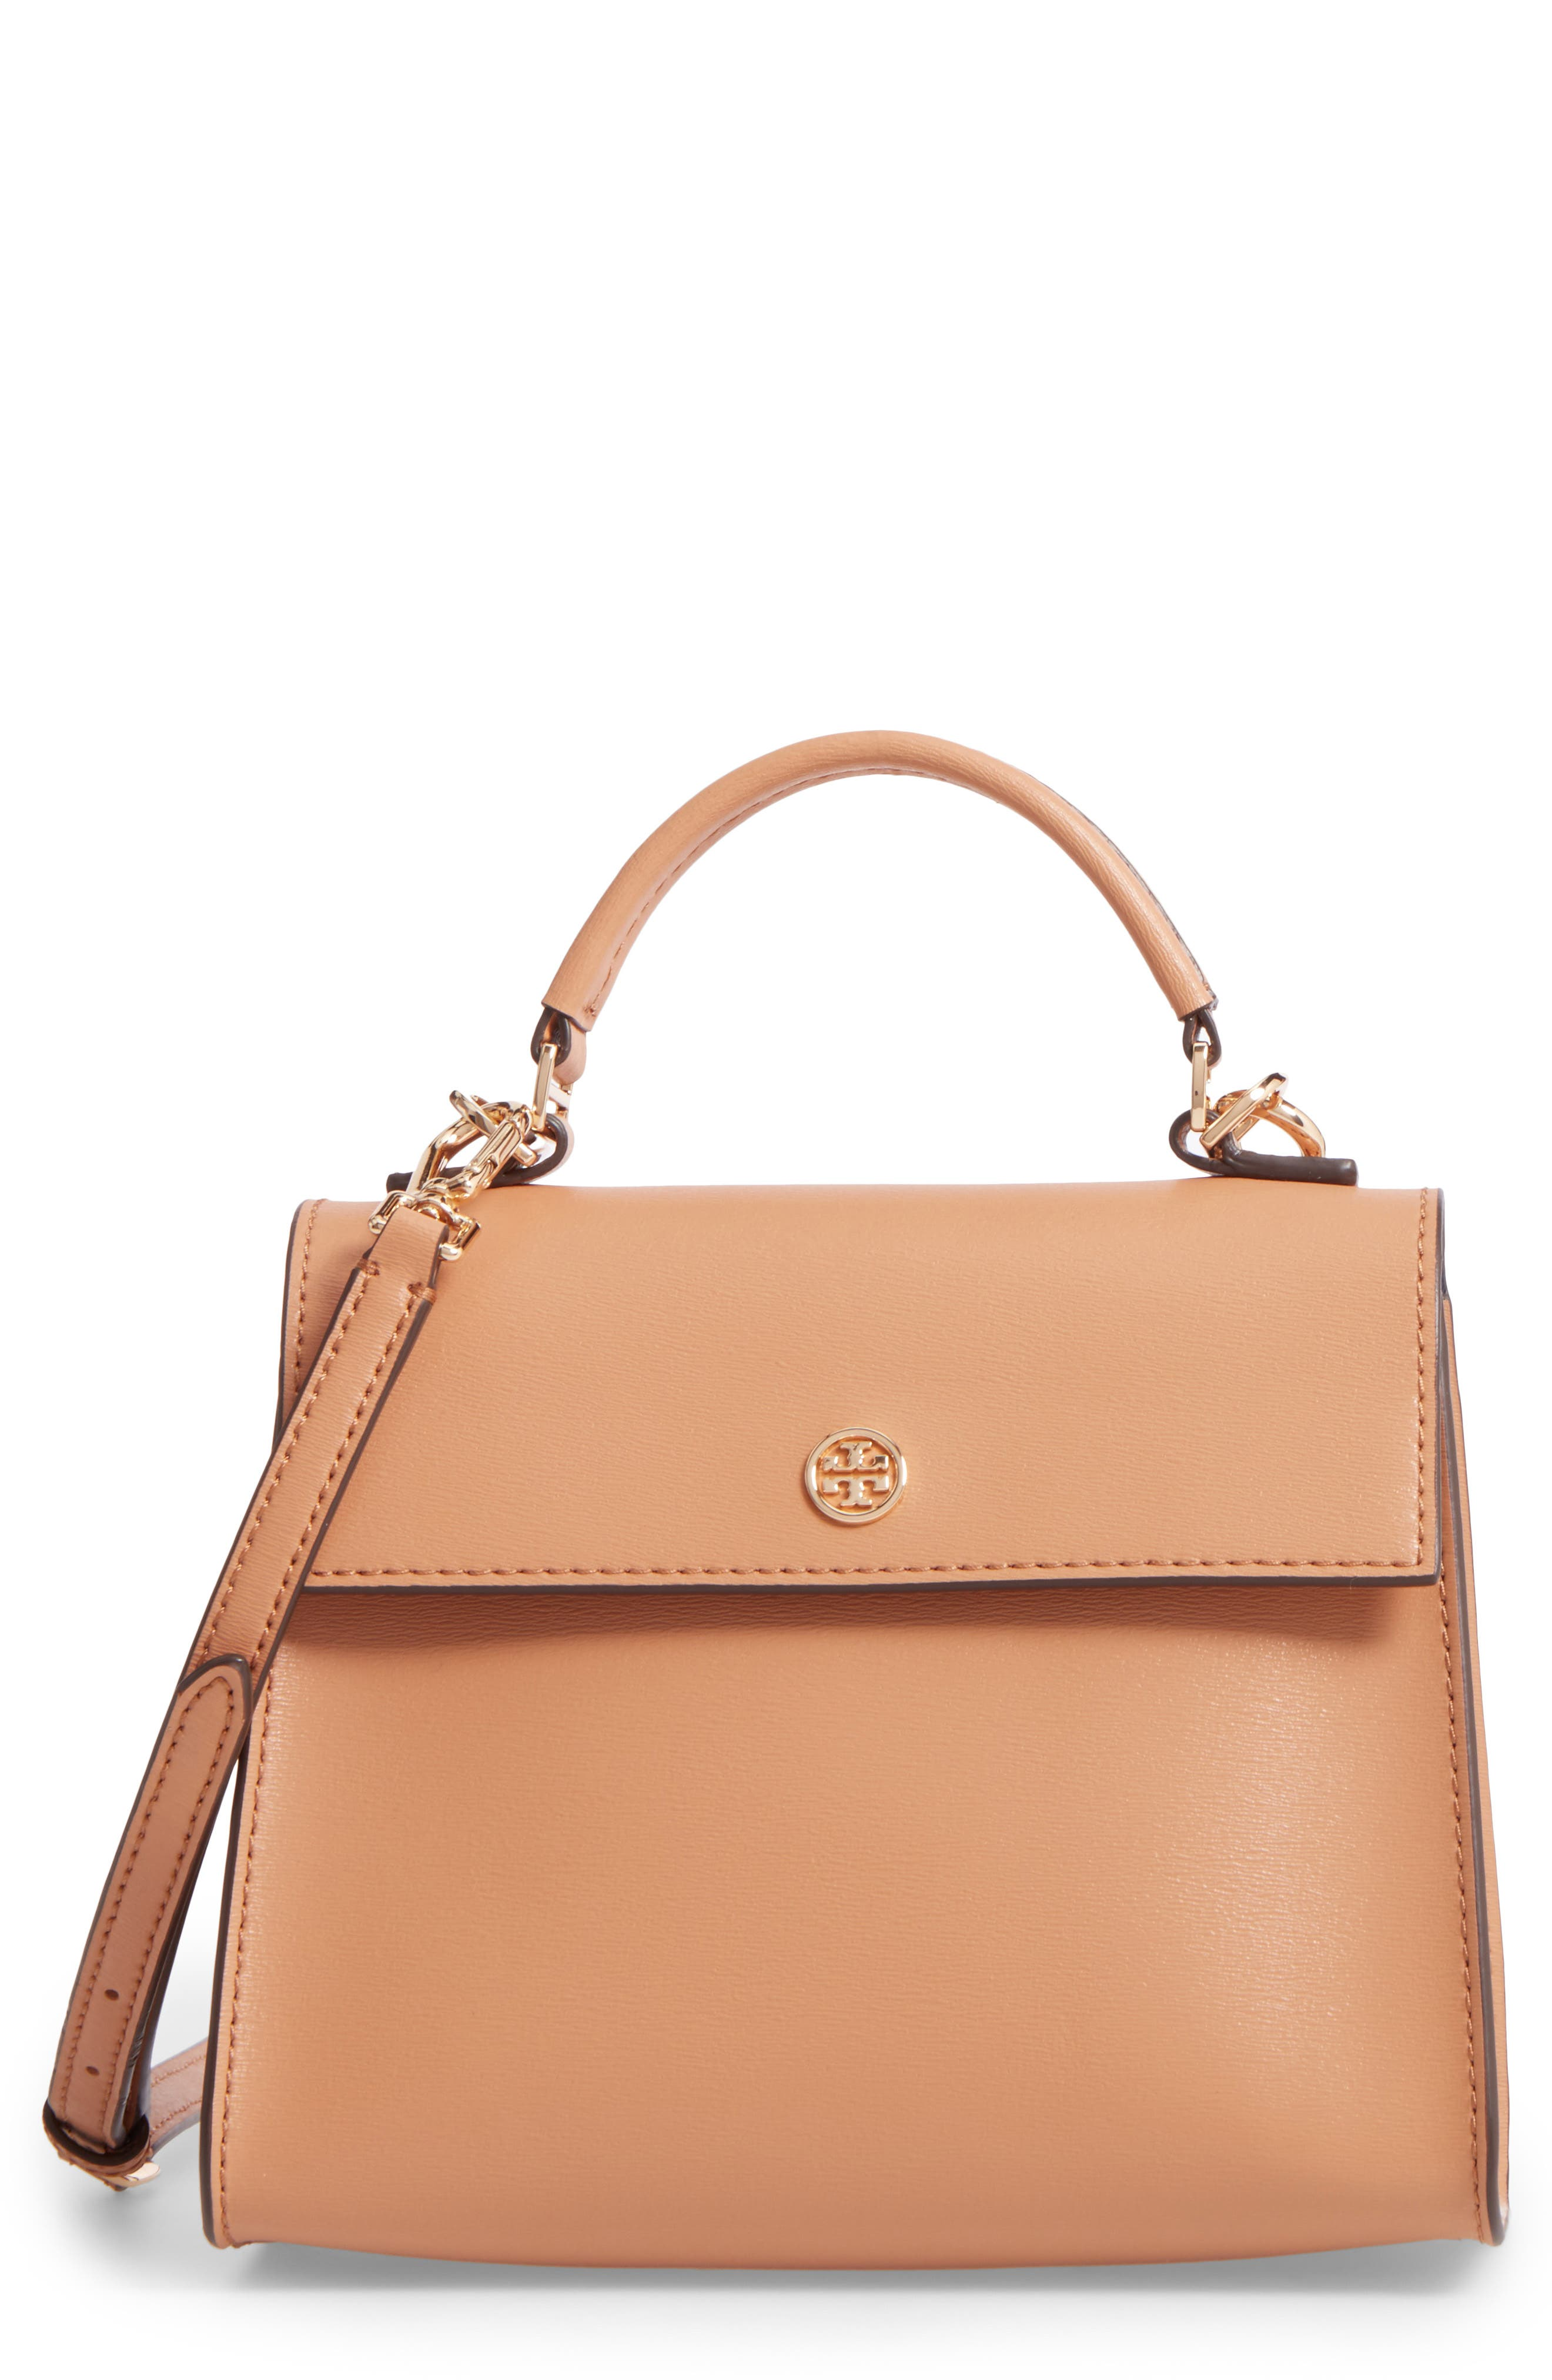 TORY BURCH,                             Small Parker Leather Top Handle Satchel,                             Main thumbnail 1, color,                             250